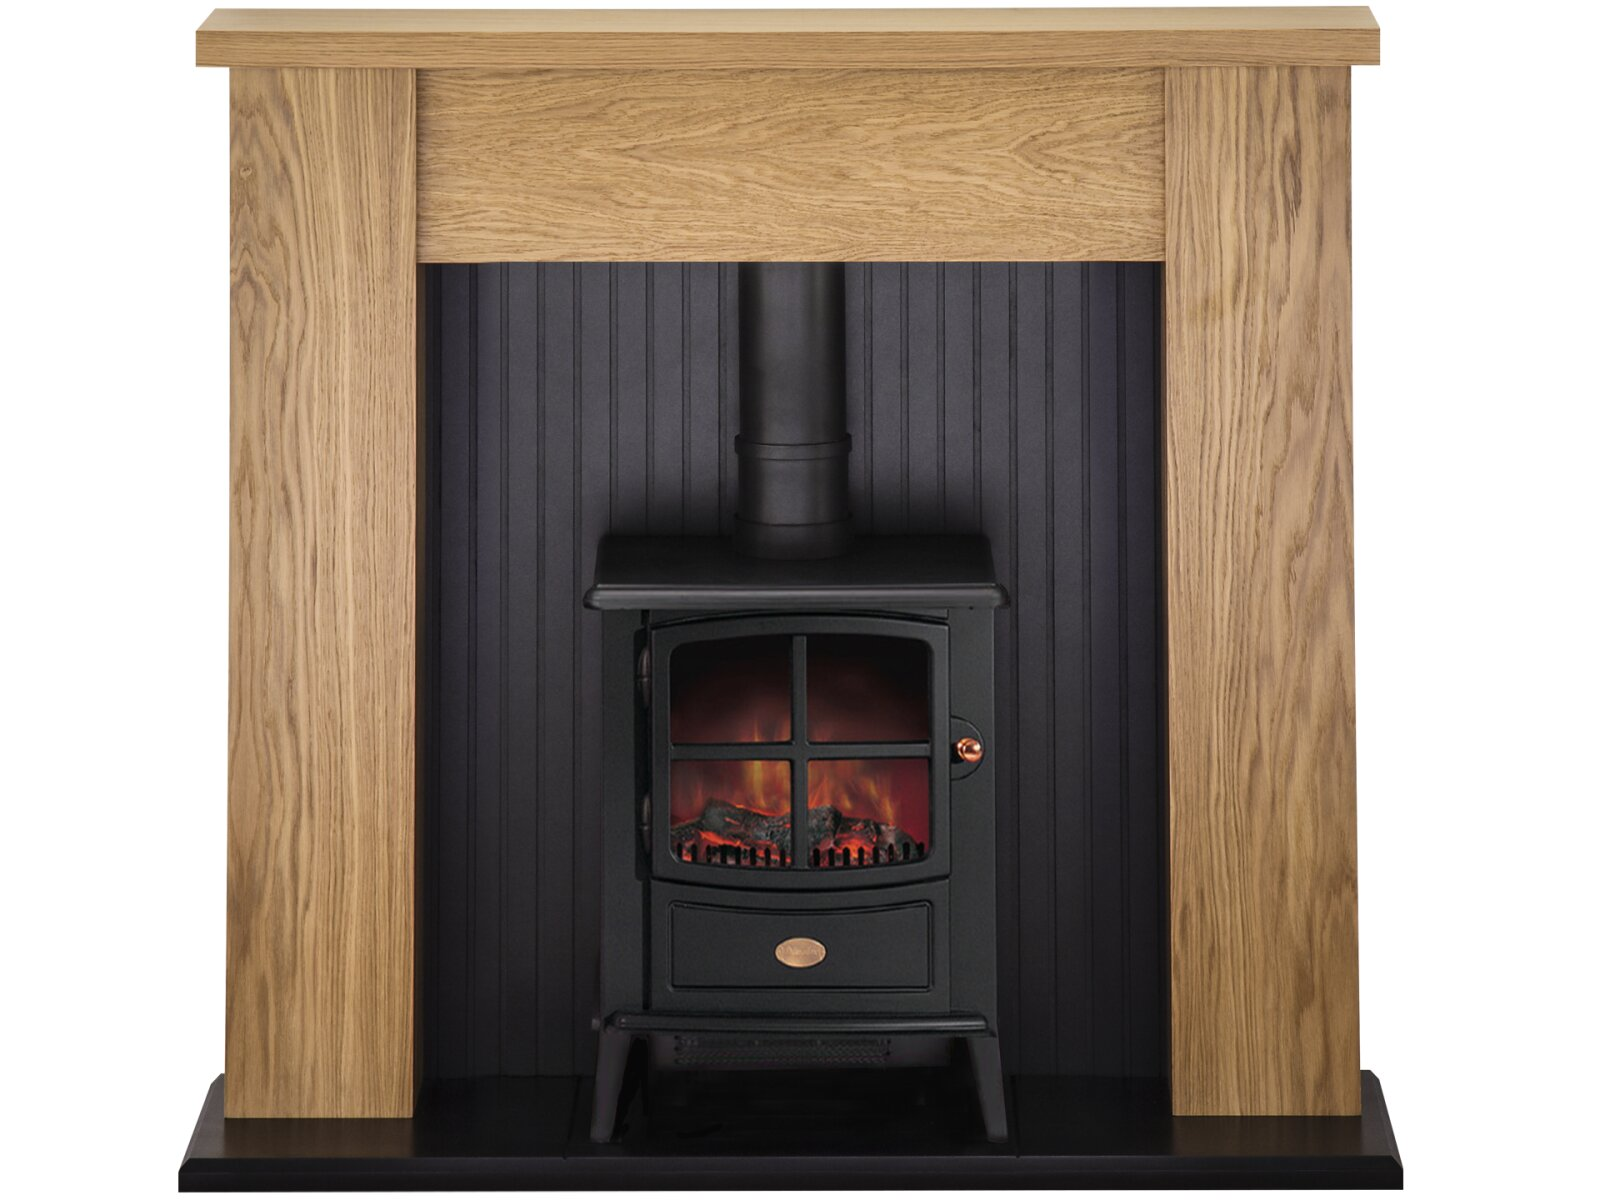 adam new england stove fireplace in oak with brayford electric stove in black 48 inch. Black Bedroom Furniture Sets. Home Design Ideas